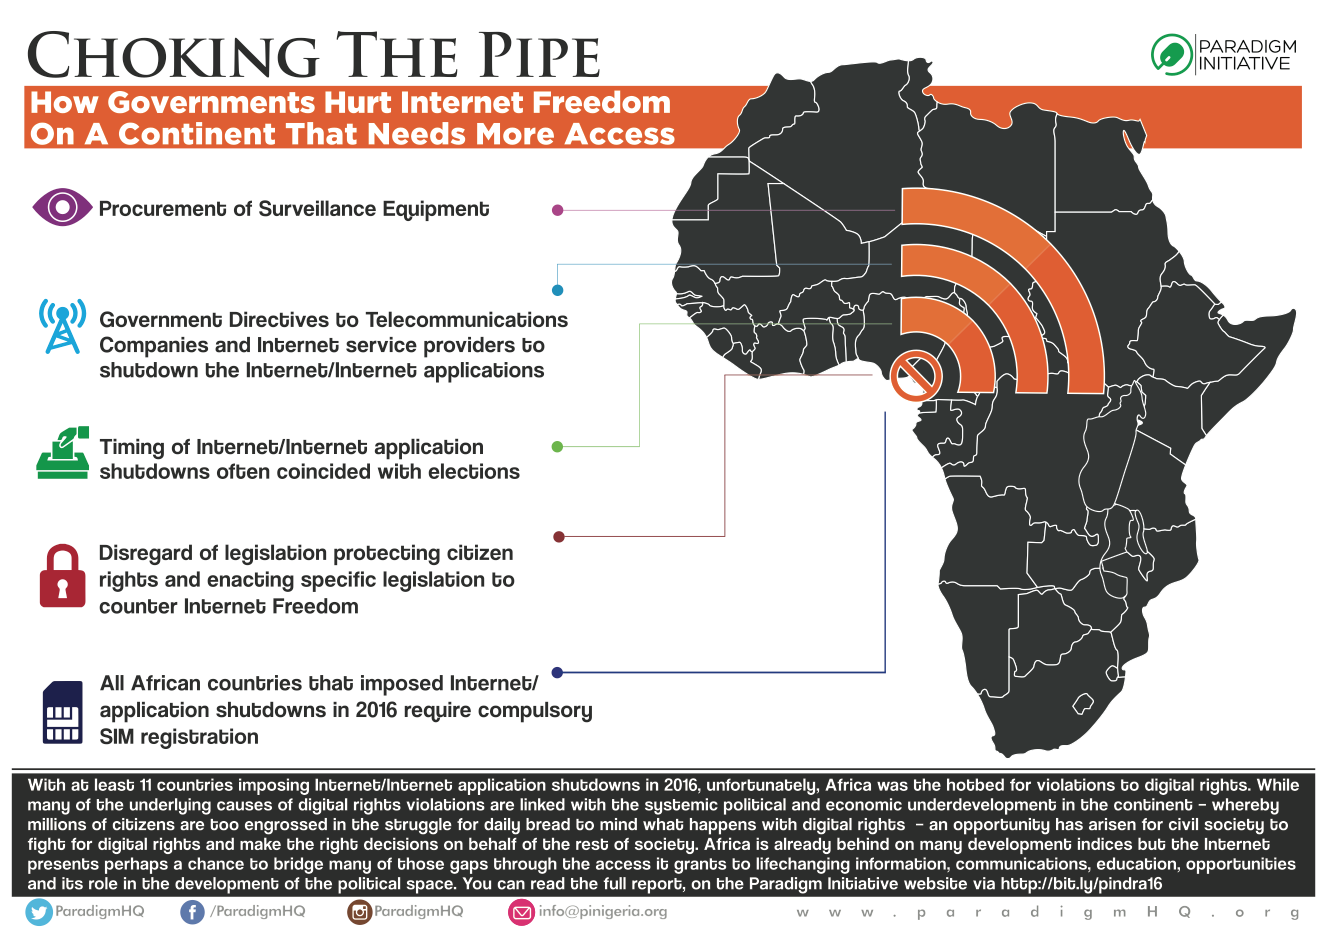 As an important election season rolls in across key African states, let's uphold digital rights